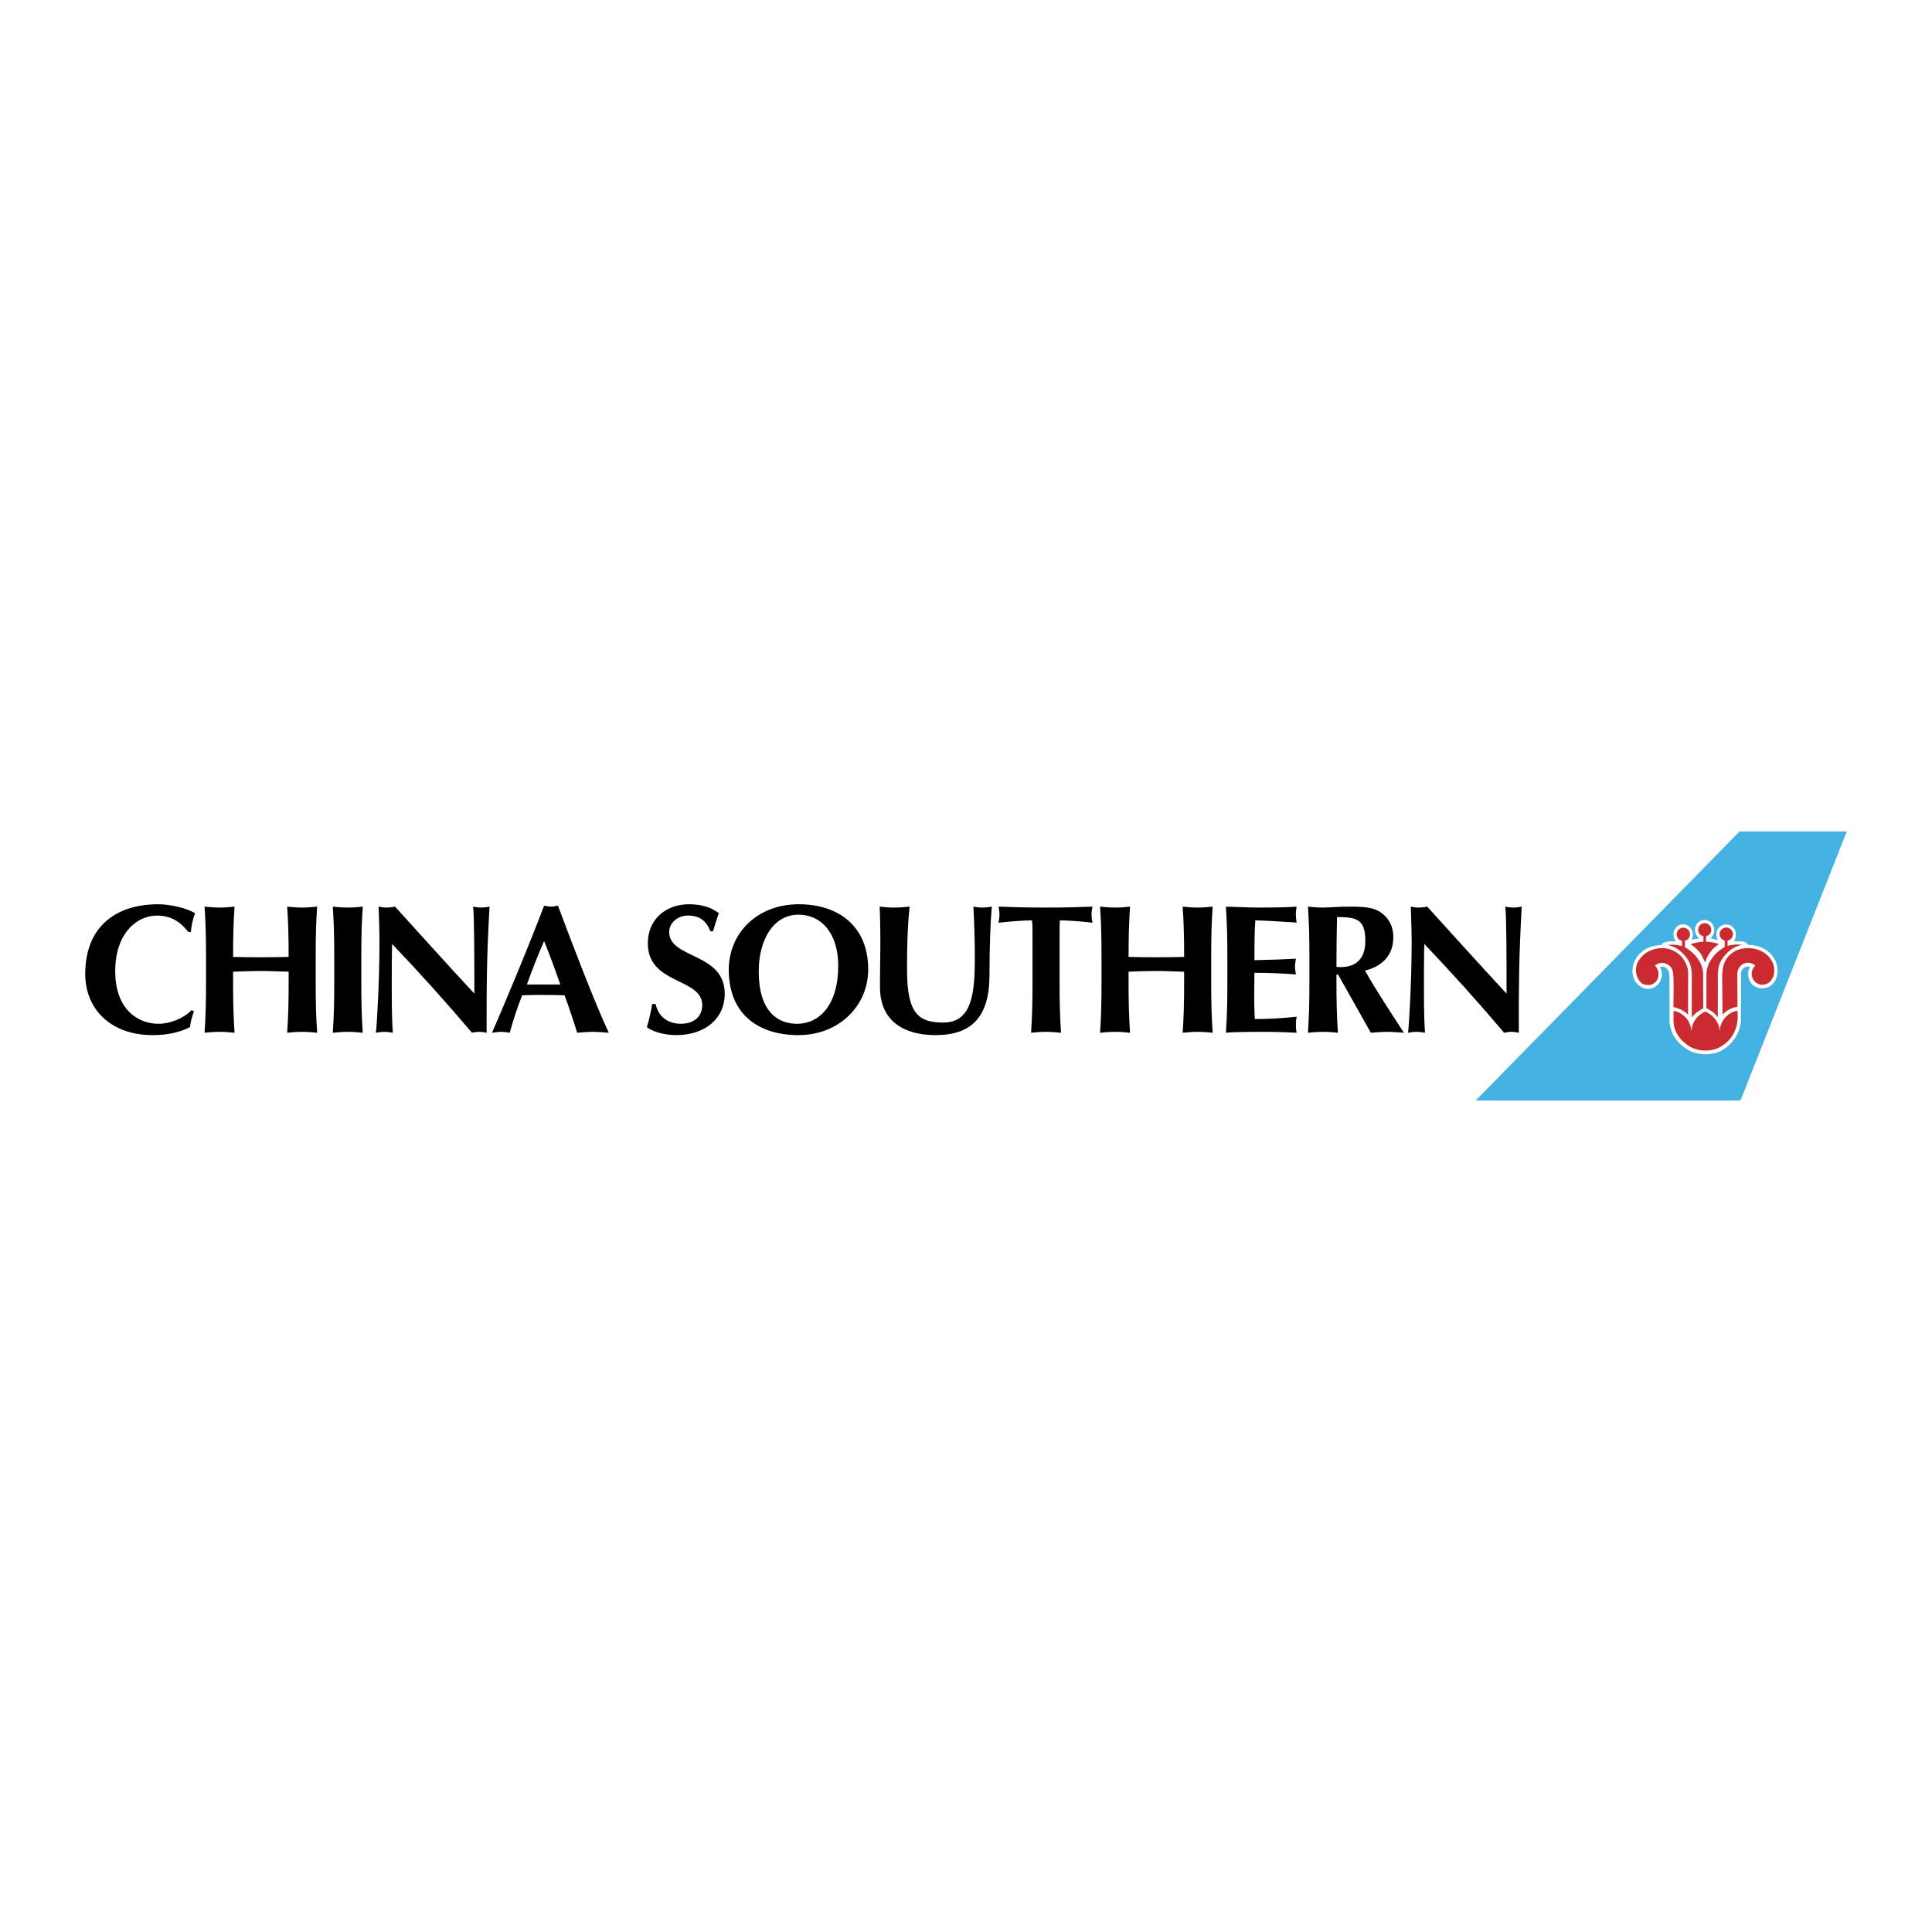 China Southern Airlines Cargo tracking | Track China Southern Airlines Cargo packages | Parcel Arrive